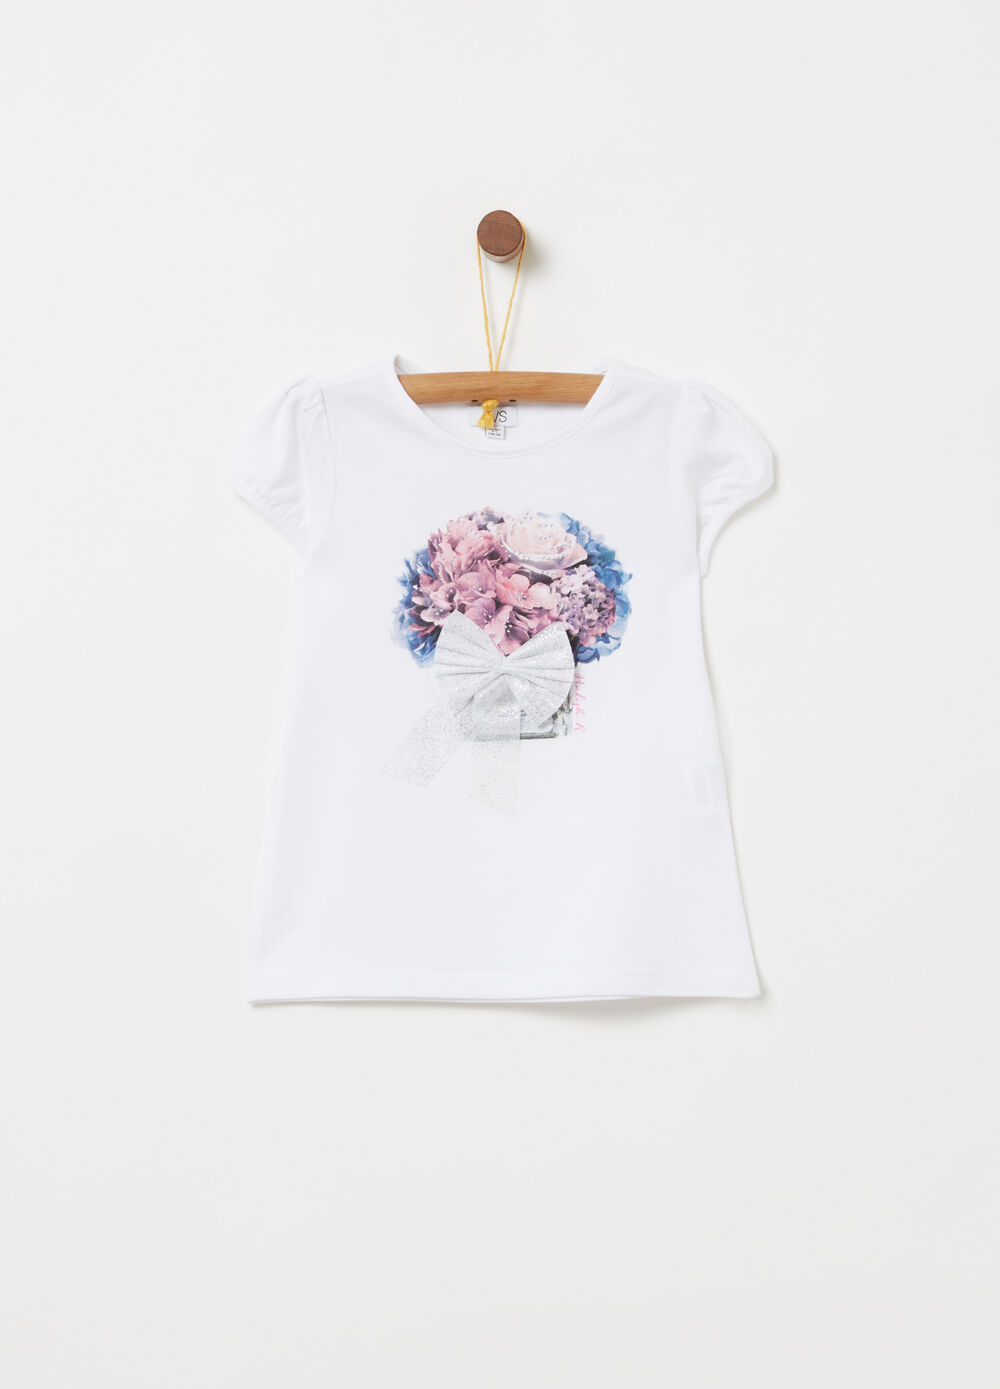 T-shirt with floral print, bow and diamantés